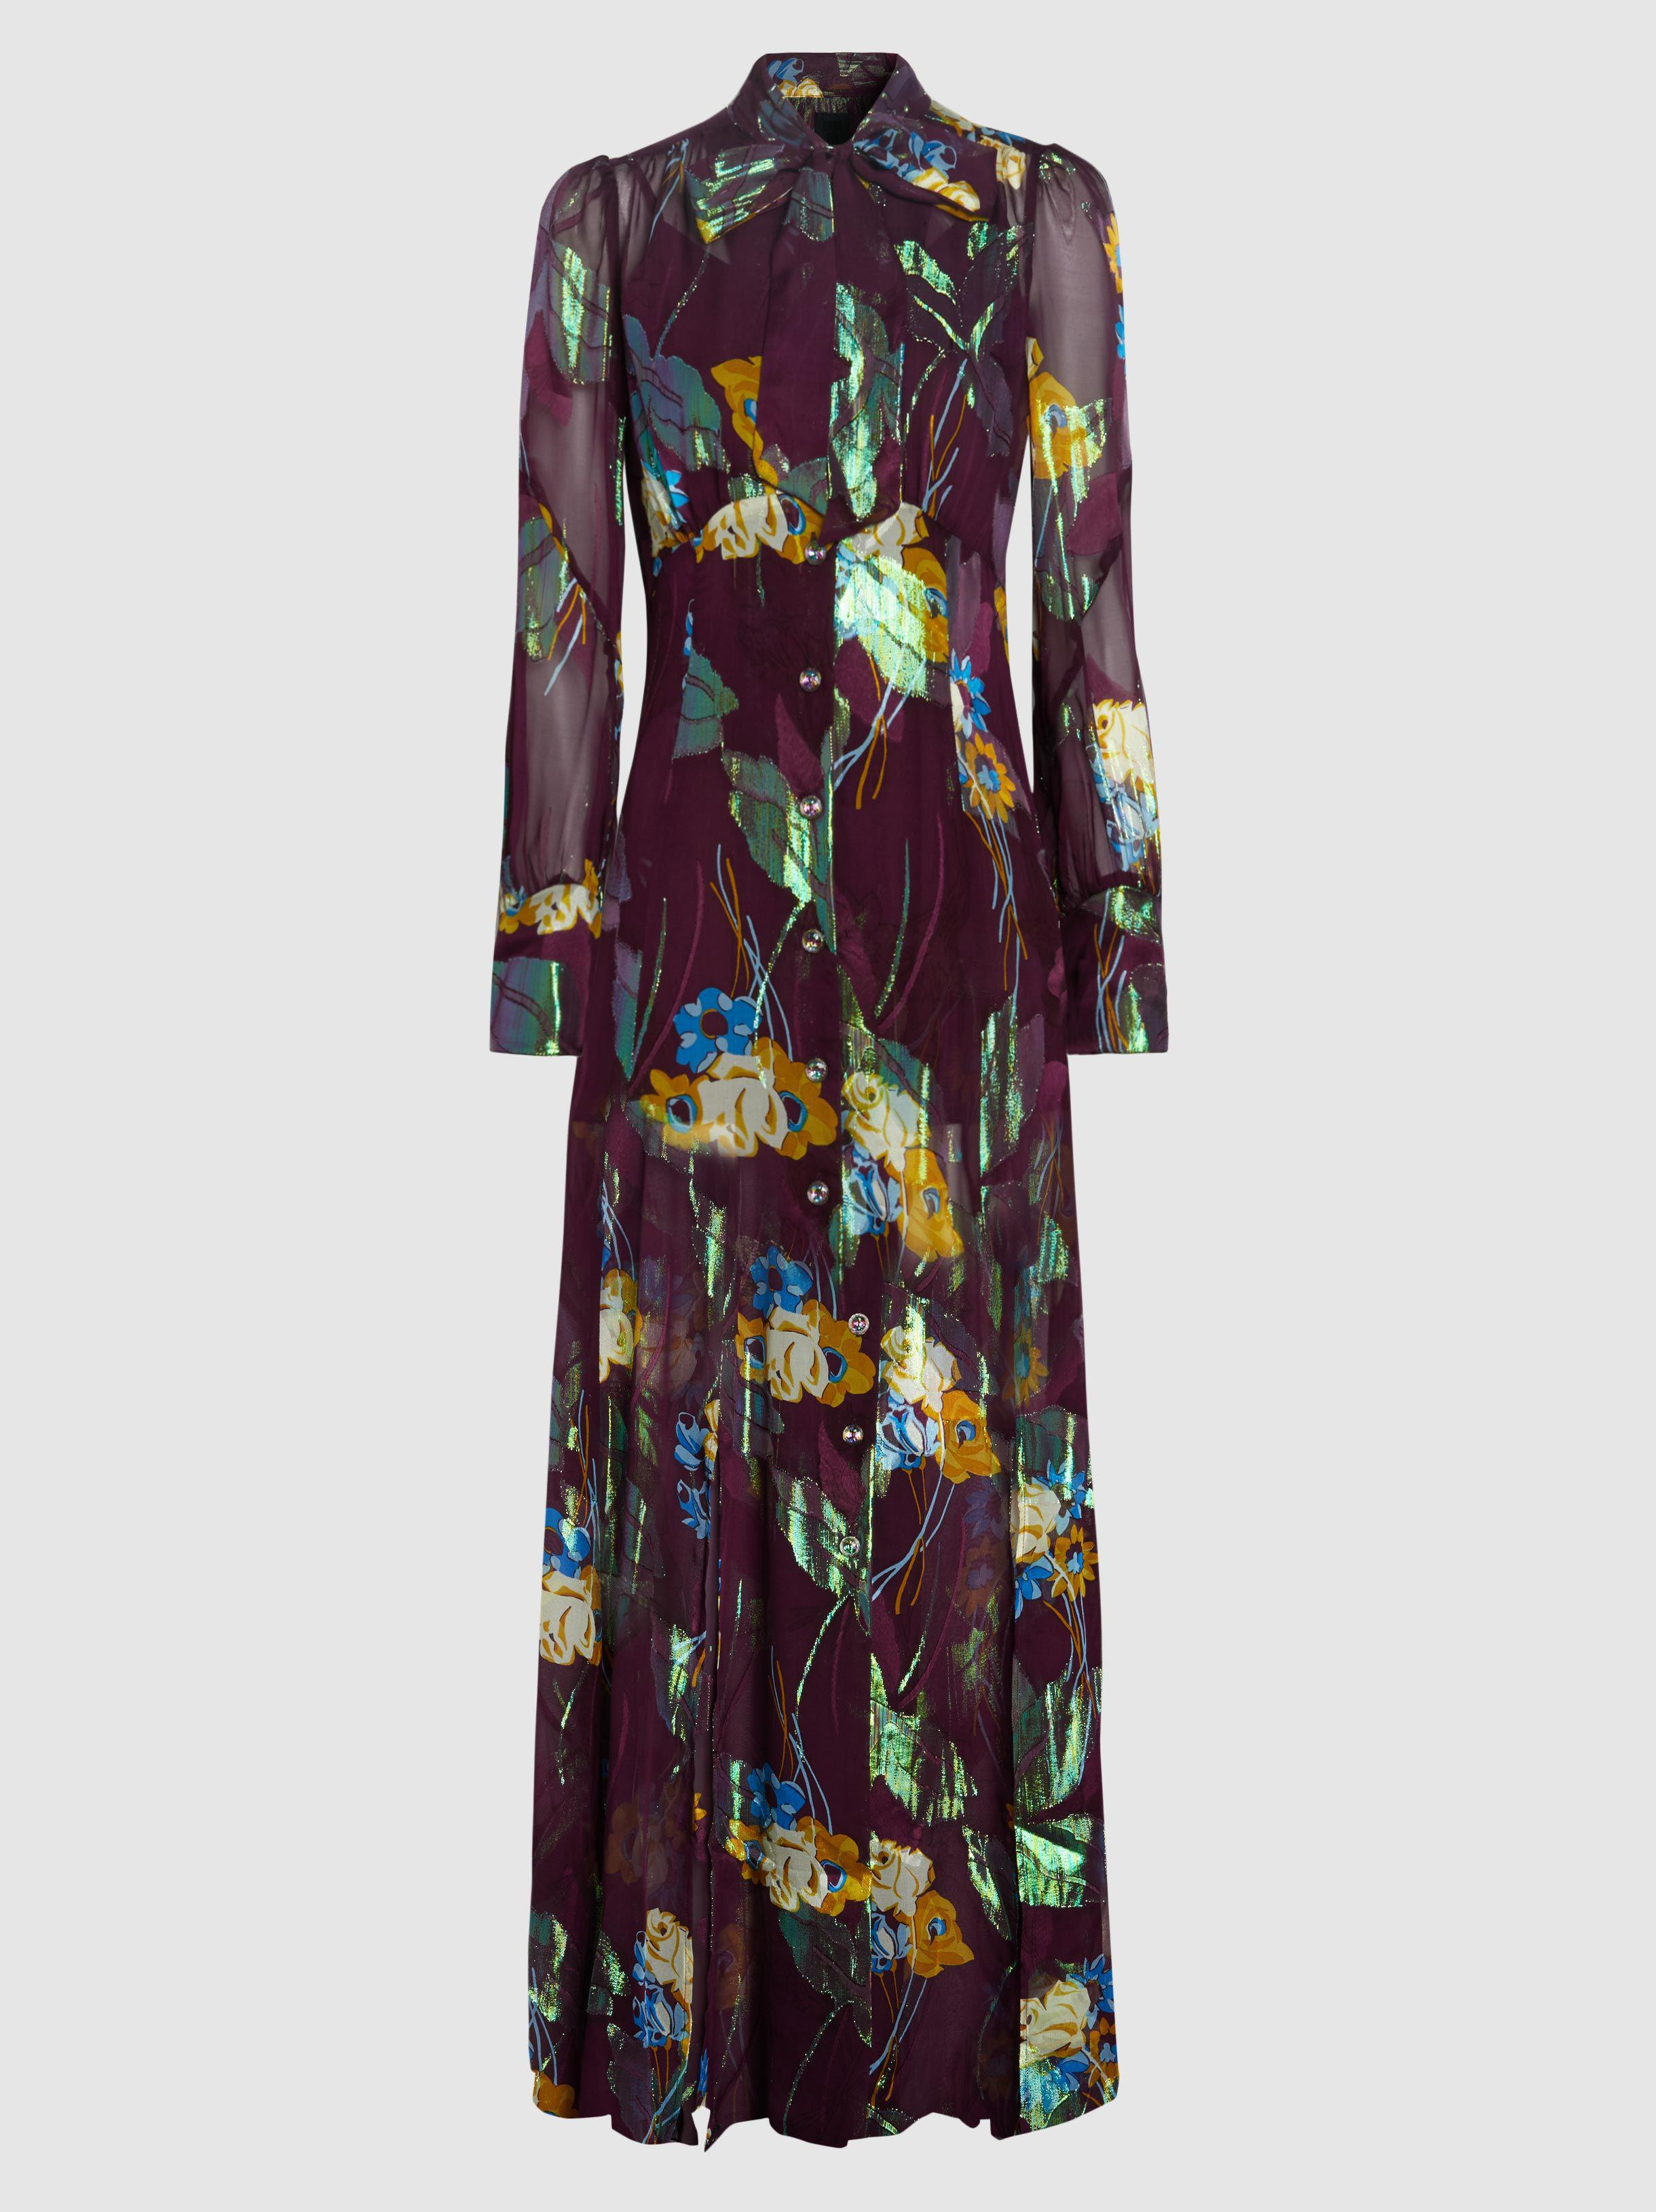 Blithe Spirit Silk-Blend Jacquard Maxi Dress Anna Sui 7Tgfp9EQZ